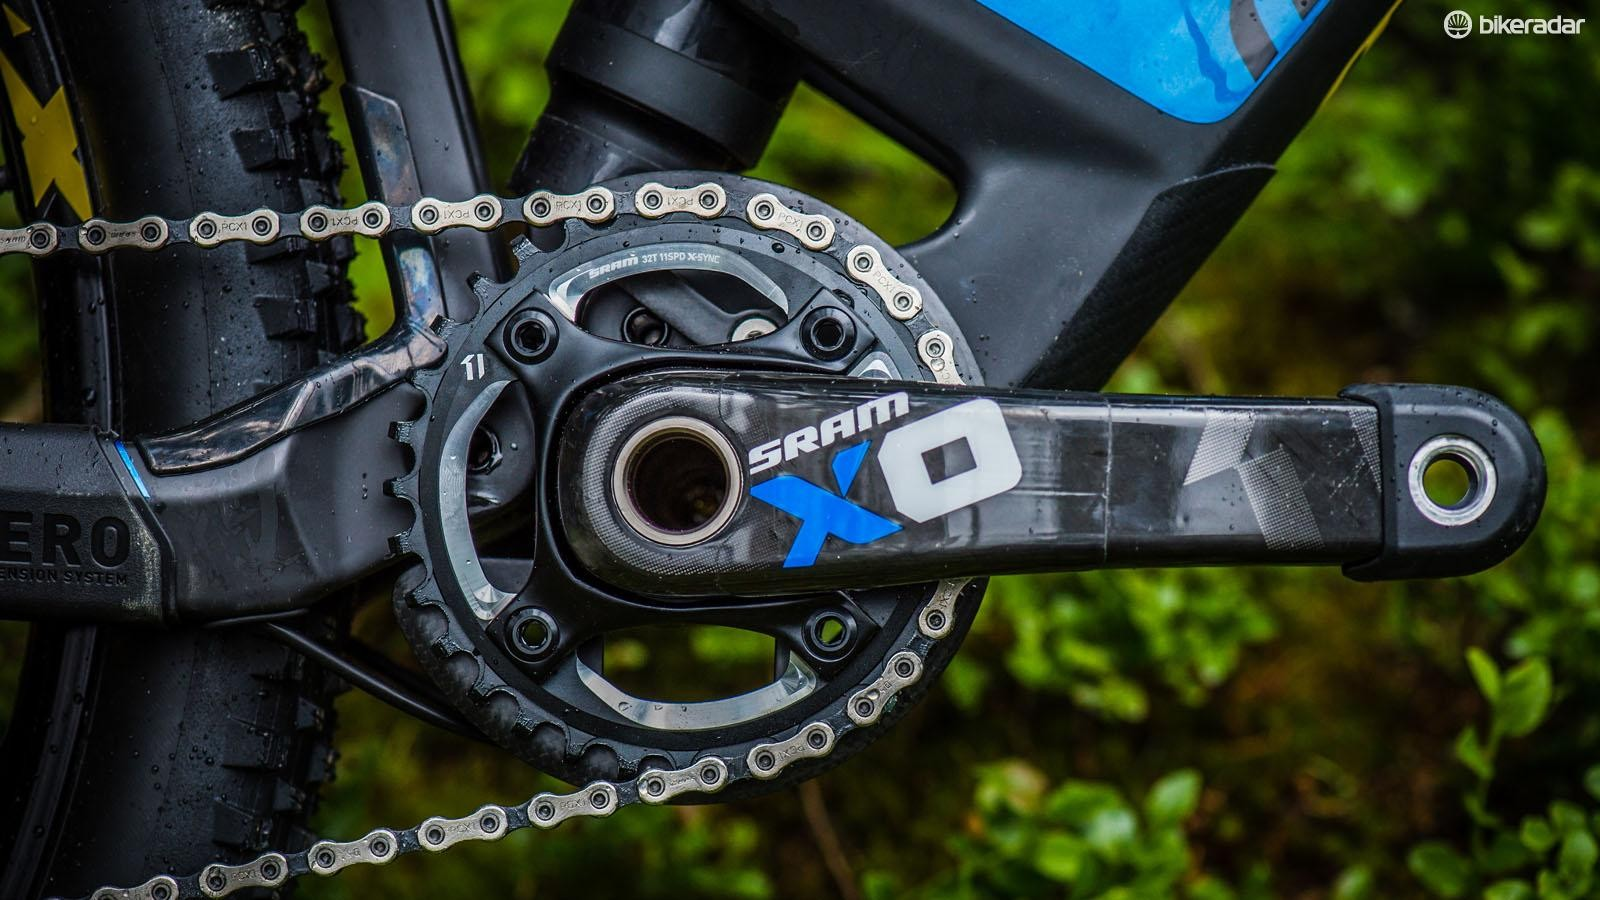 All models are 1x drivetrain specific, but the ISCG mounted carbon ring protector is a nice touch